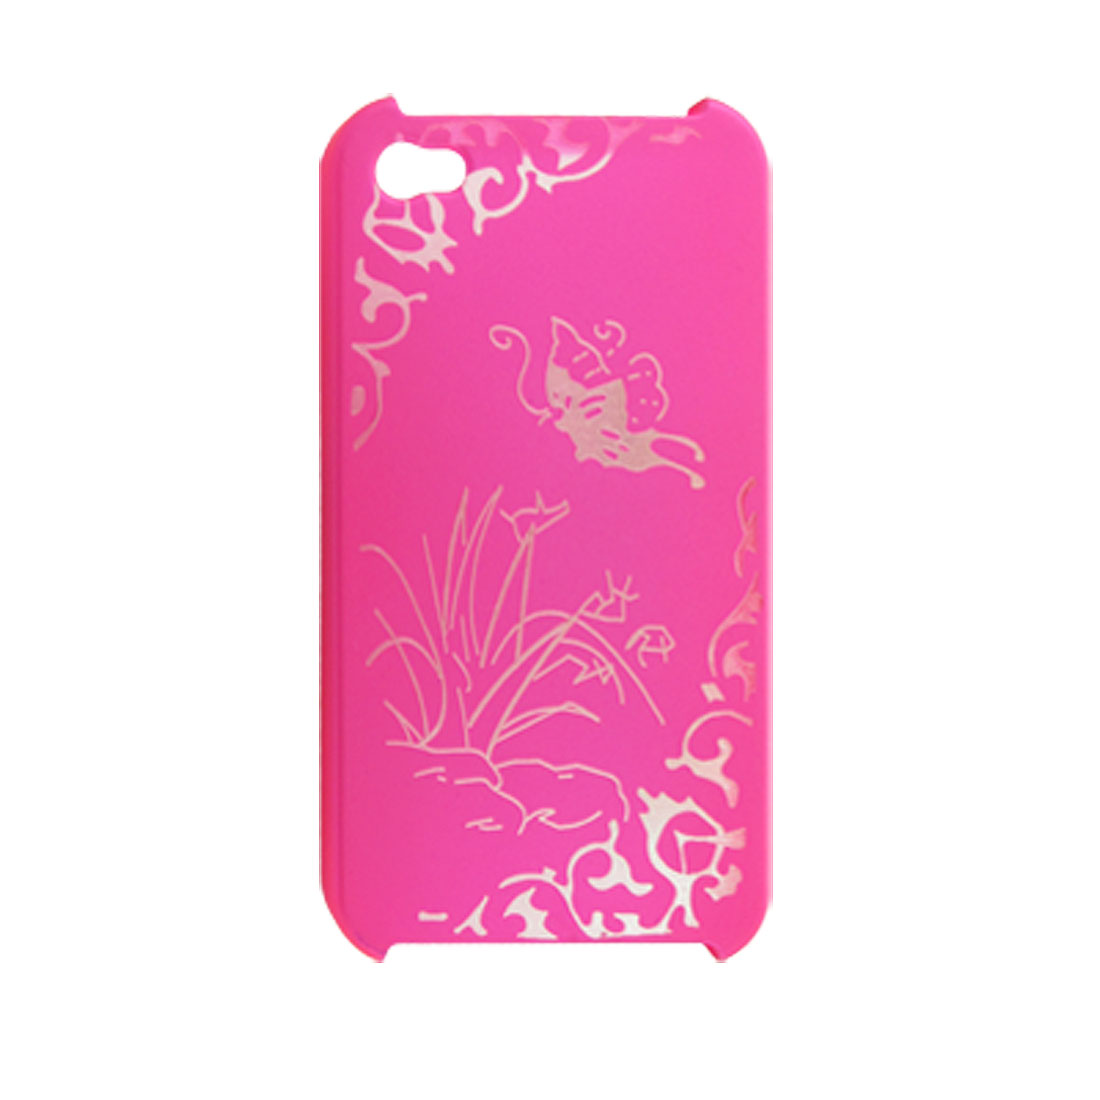 Non Slip Hot Pink Hard Plastic Case w Screen Protector for iPhone 4 4G